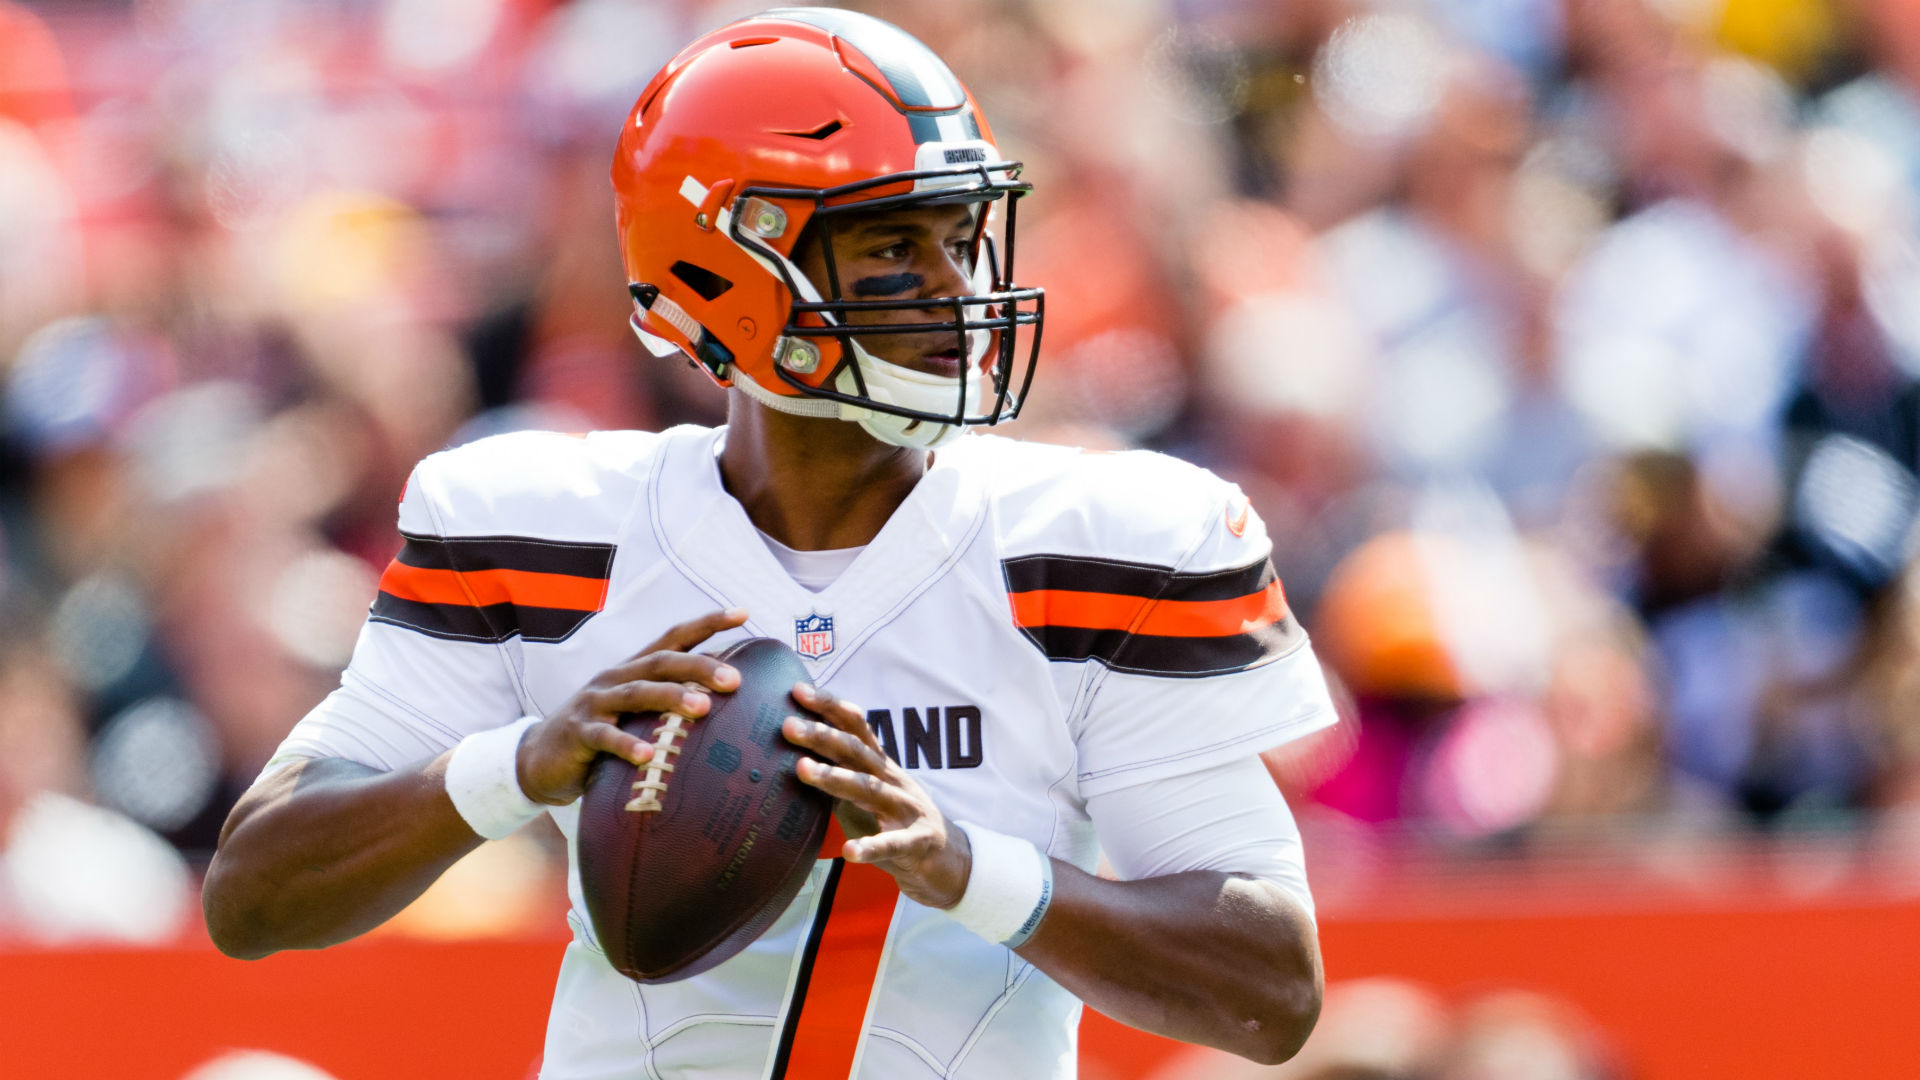 Browns' Hue Jackson says rookie quarterback DeShone Kizer 'gives us hope'